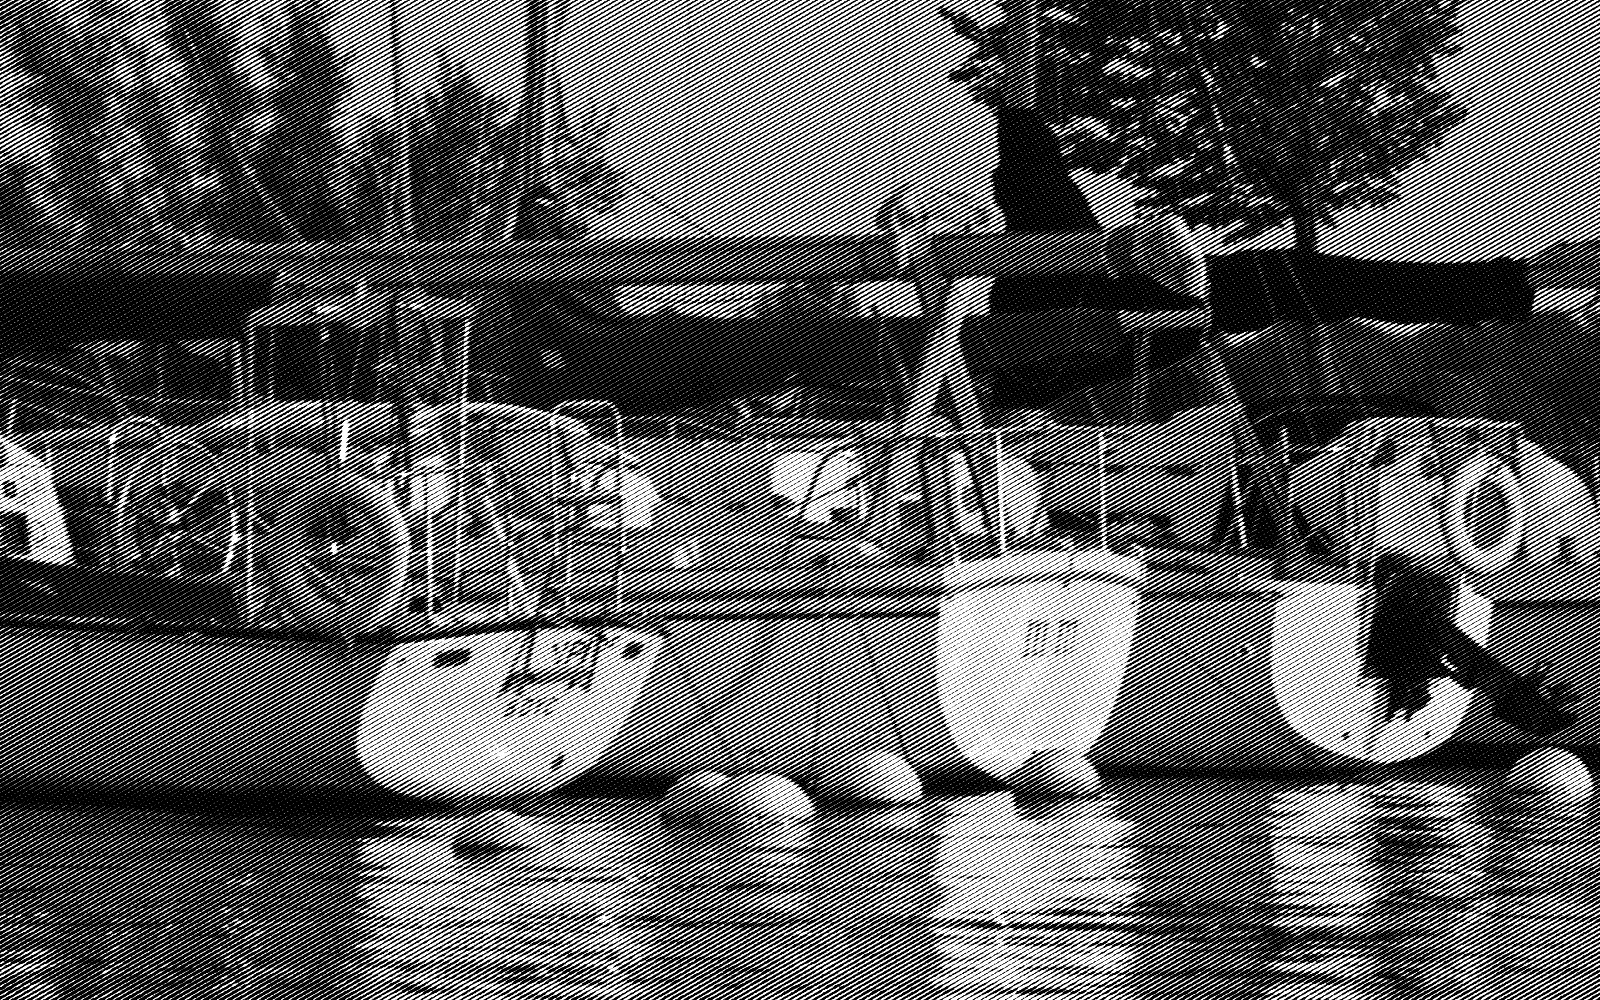 Boats at berth, tucked in for the evening. Baie d'Urfe Yacht CLub, 2018.